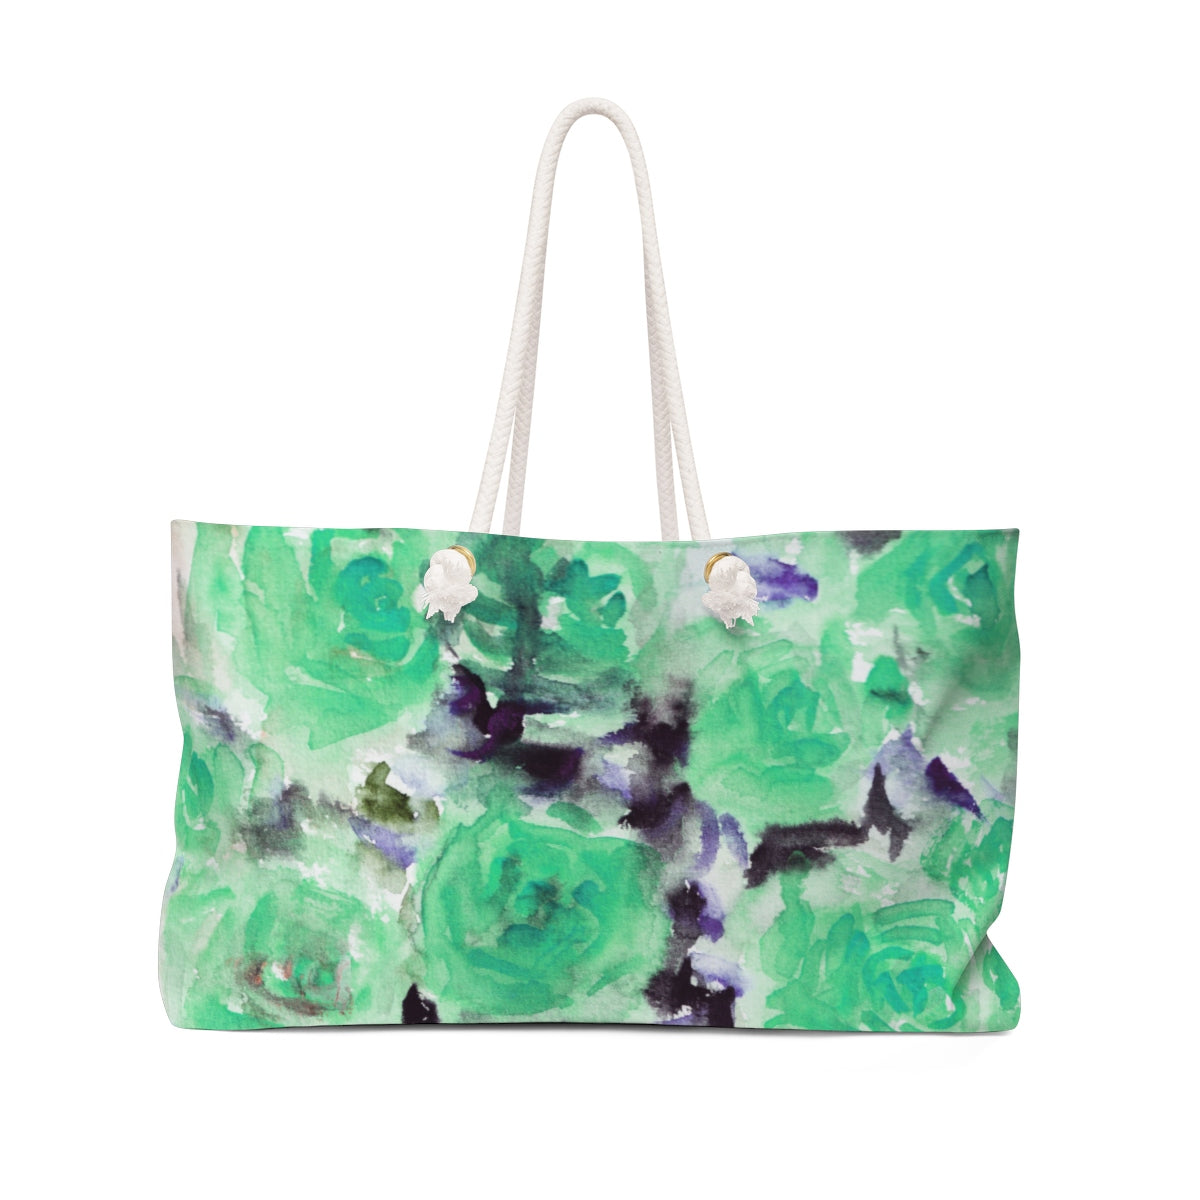 "Dreamy Light Blue Rose Floral Flower Print 24""x13"" Large Weekender Bag-Made in USA-Weekender Bag-24x13-Heidi Kimura Art LLC Blue Floral Weekender Bag, Dreamy Light Blue Rose Floral Flower Print 24""x13"" Large Size Designer Weekender Bag - Made in USA"